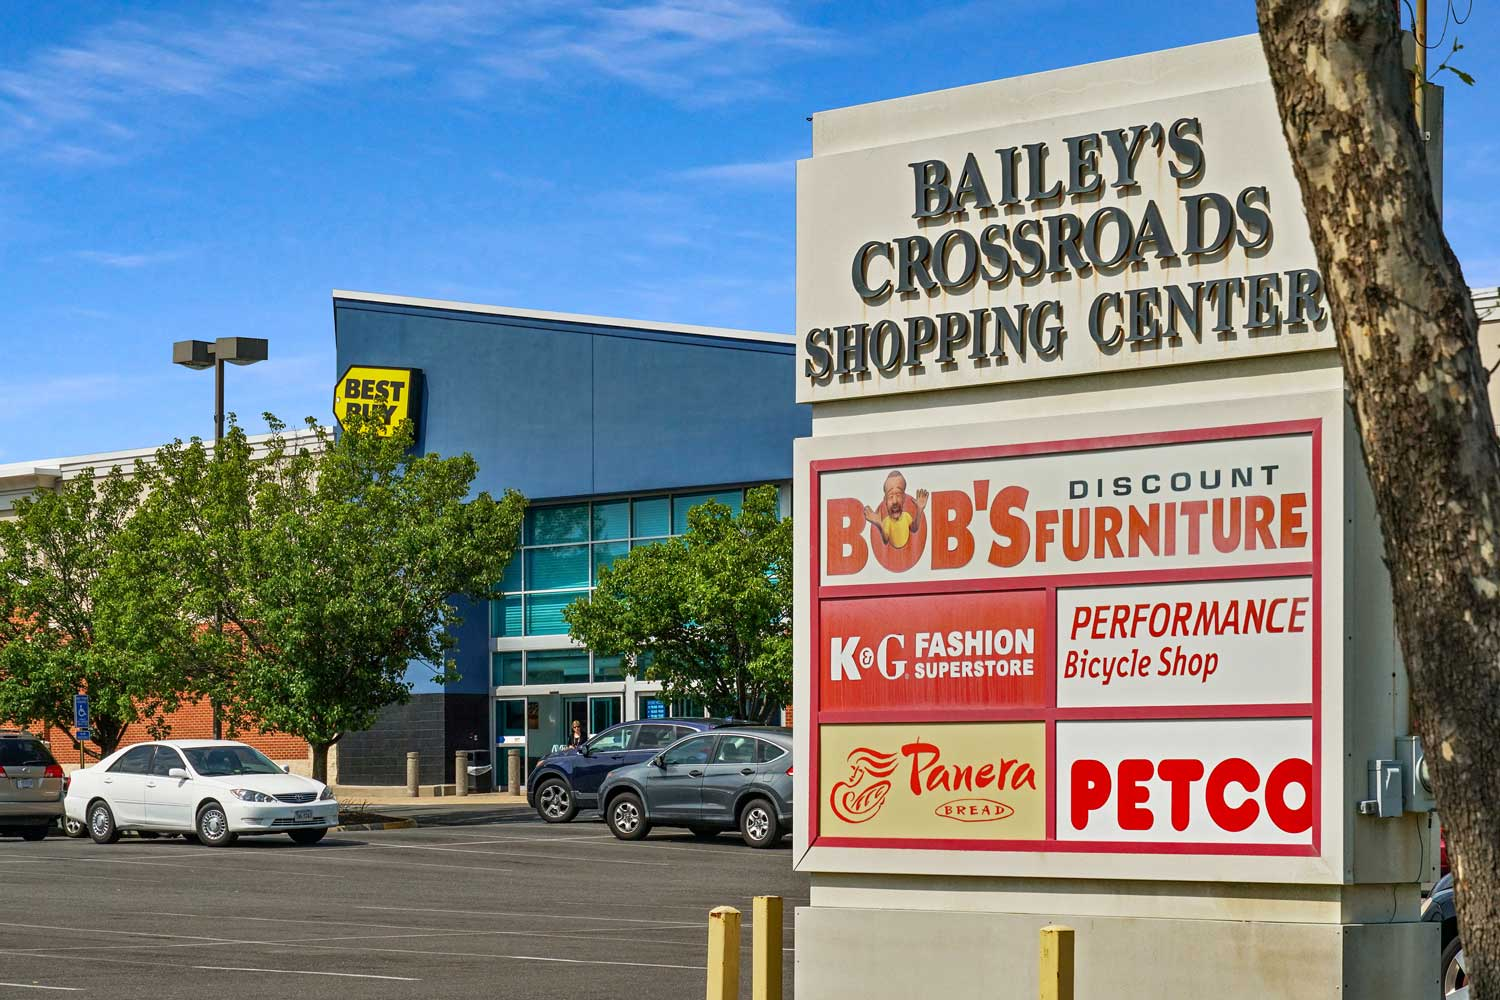 Bailey's Crossroads Shopping Center is 3 minutes from Barcroft View Apartments